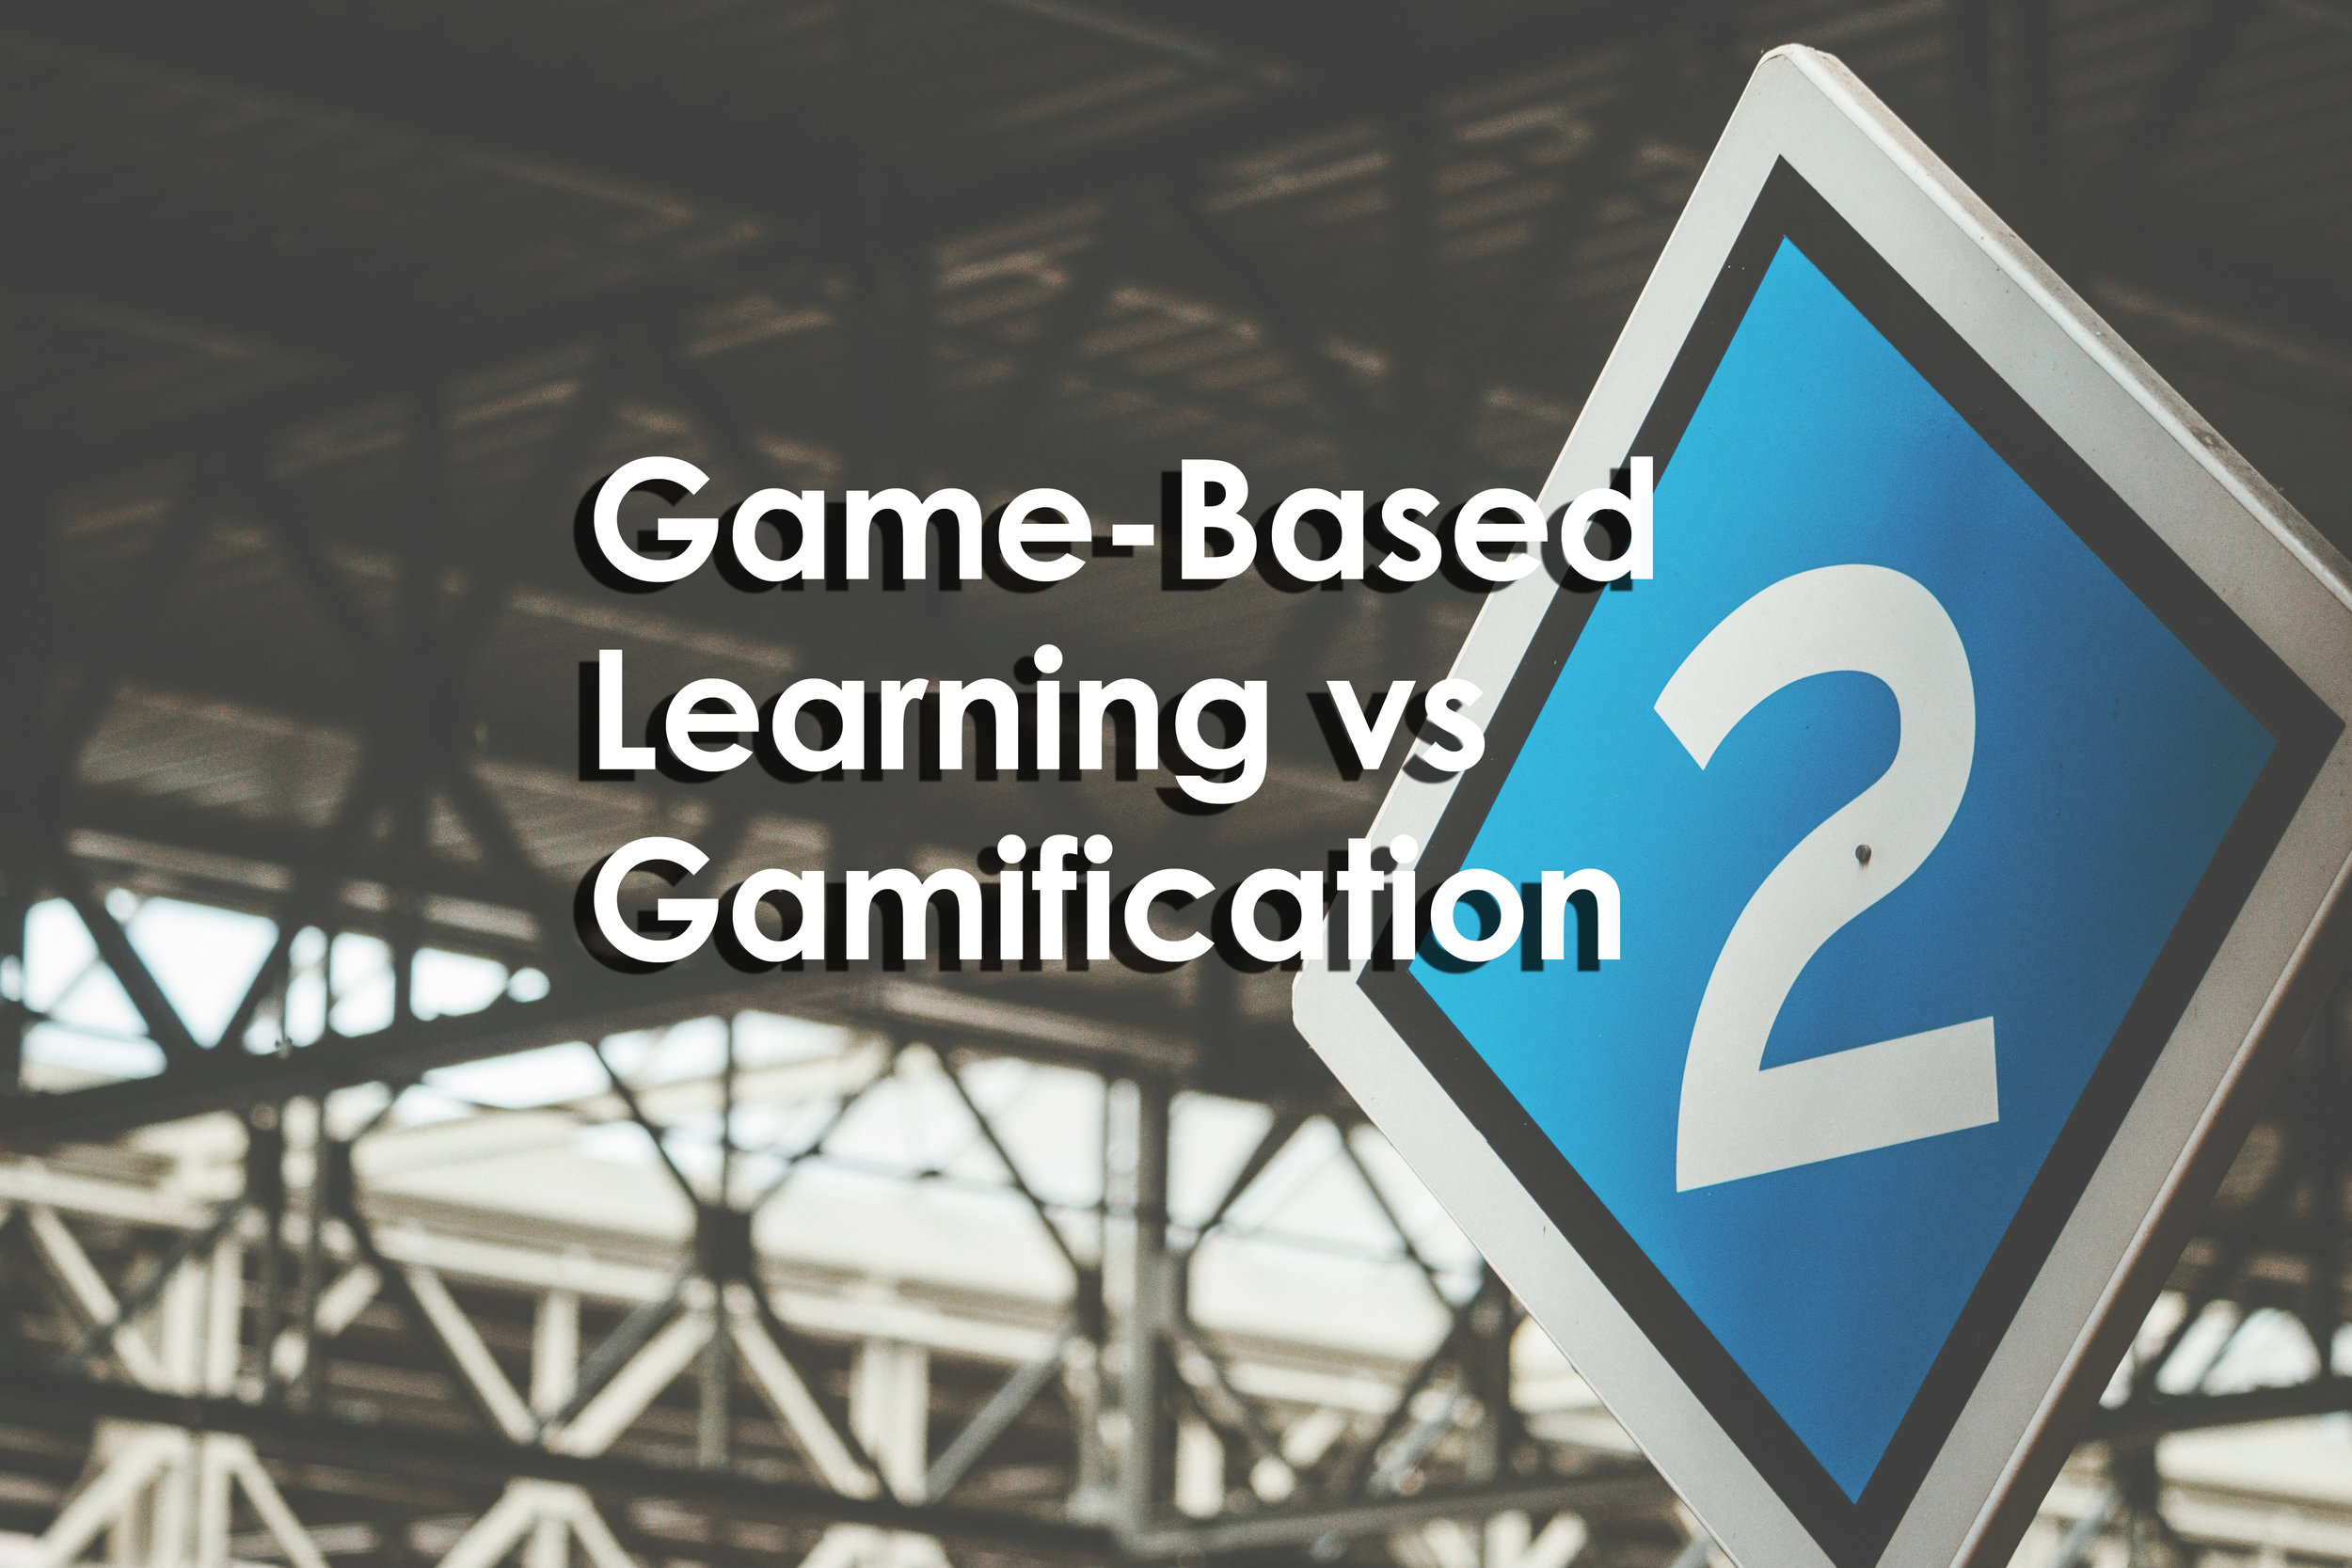 Game-Based Learning vs Gamification